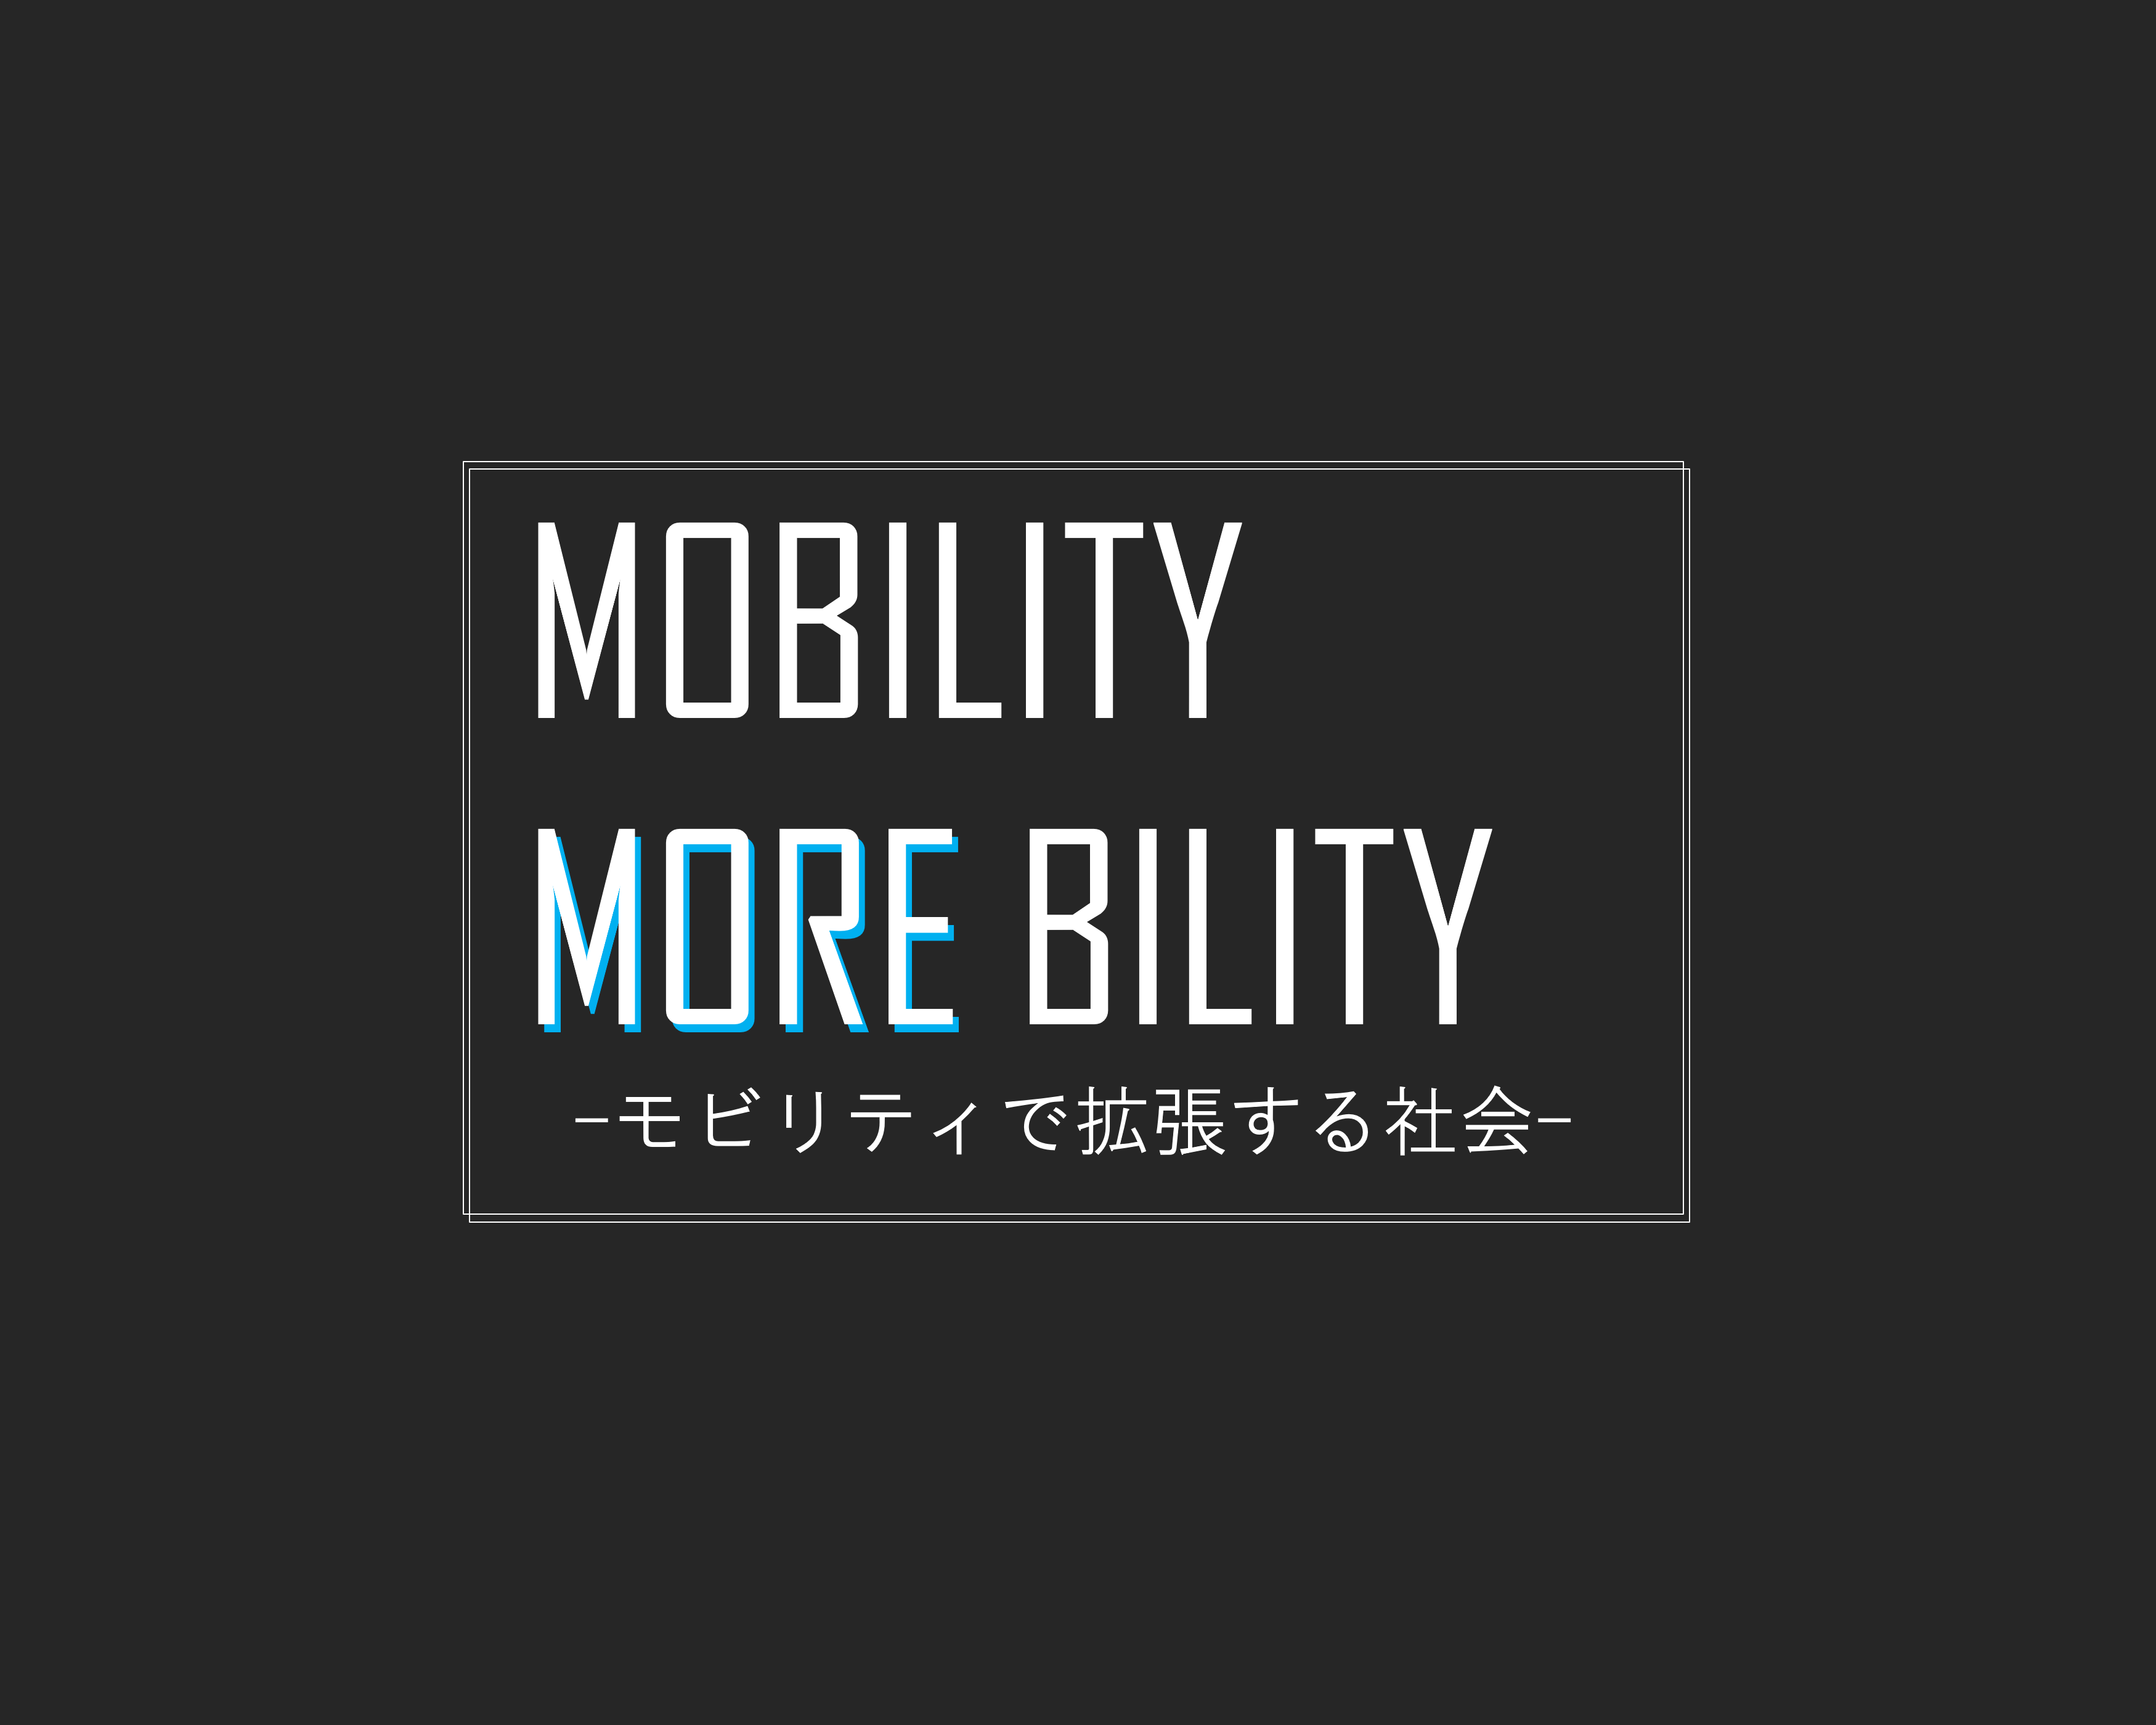 MOBILITY MORE BILITY